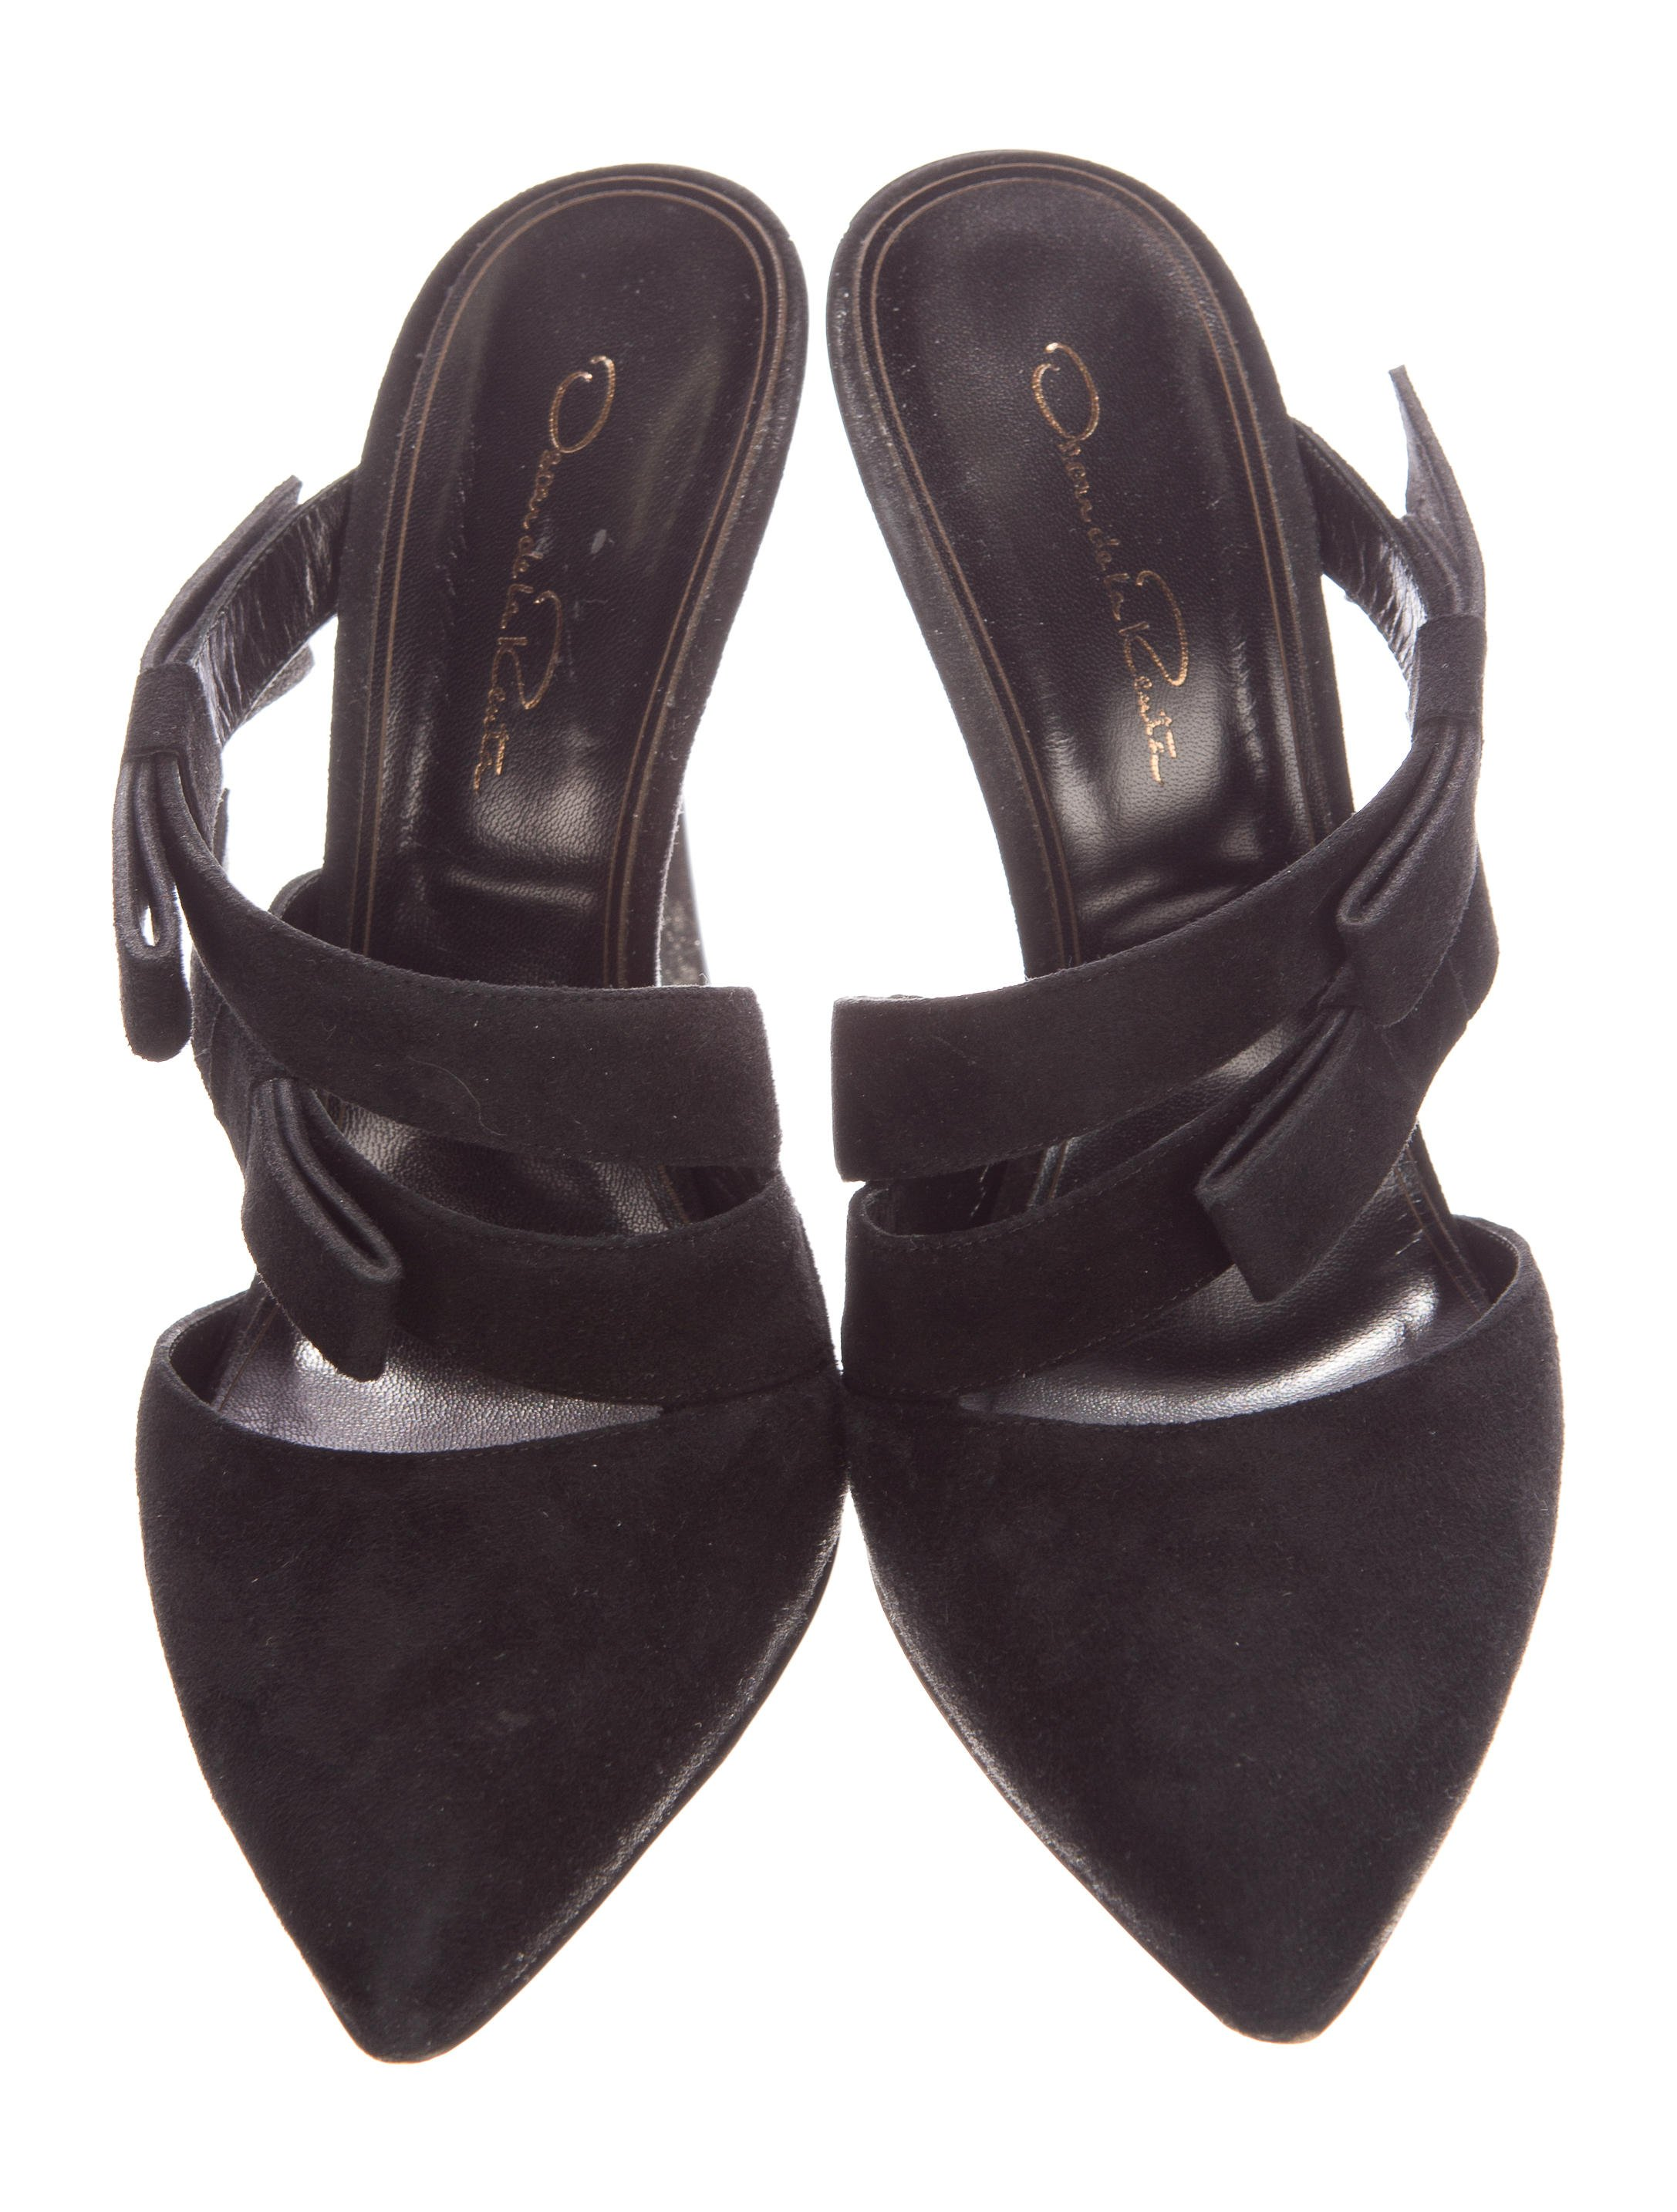 Oscar-De-La-Renta-Black-Suede-Mule-Slide-Pump-Shoe-Holiday-Bow-Designer-Sz-38-8_5975C.jpg